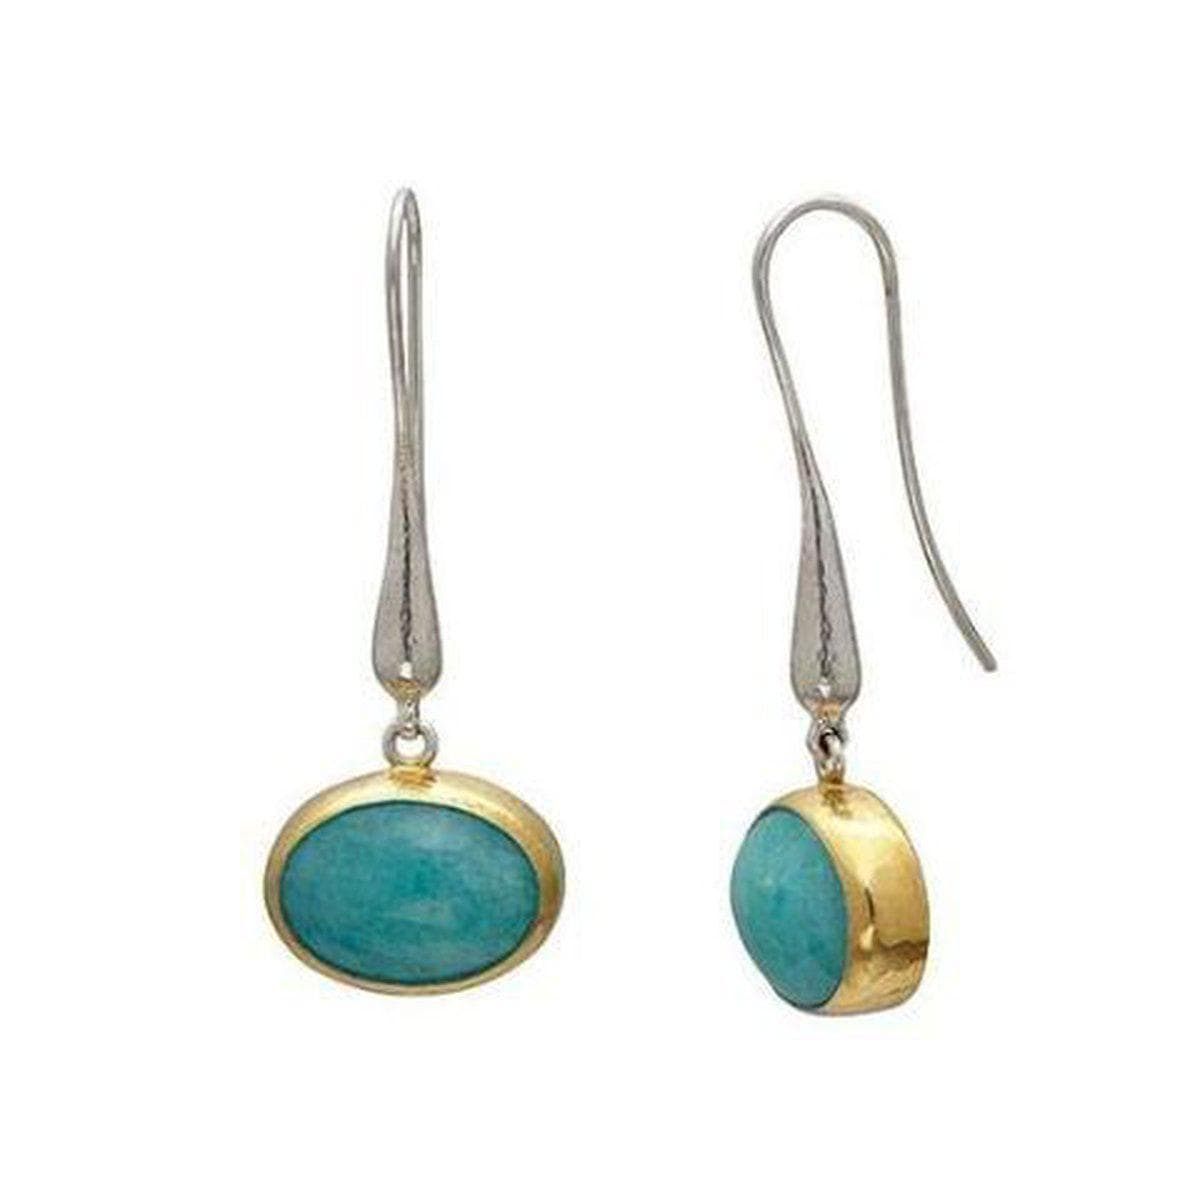 Galapagos Sterling Silver Amazonite Earrings - SE-U25390-AMA-GURHAN-Renee Taylor Gallery